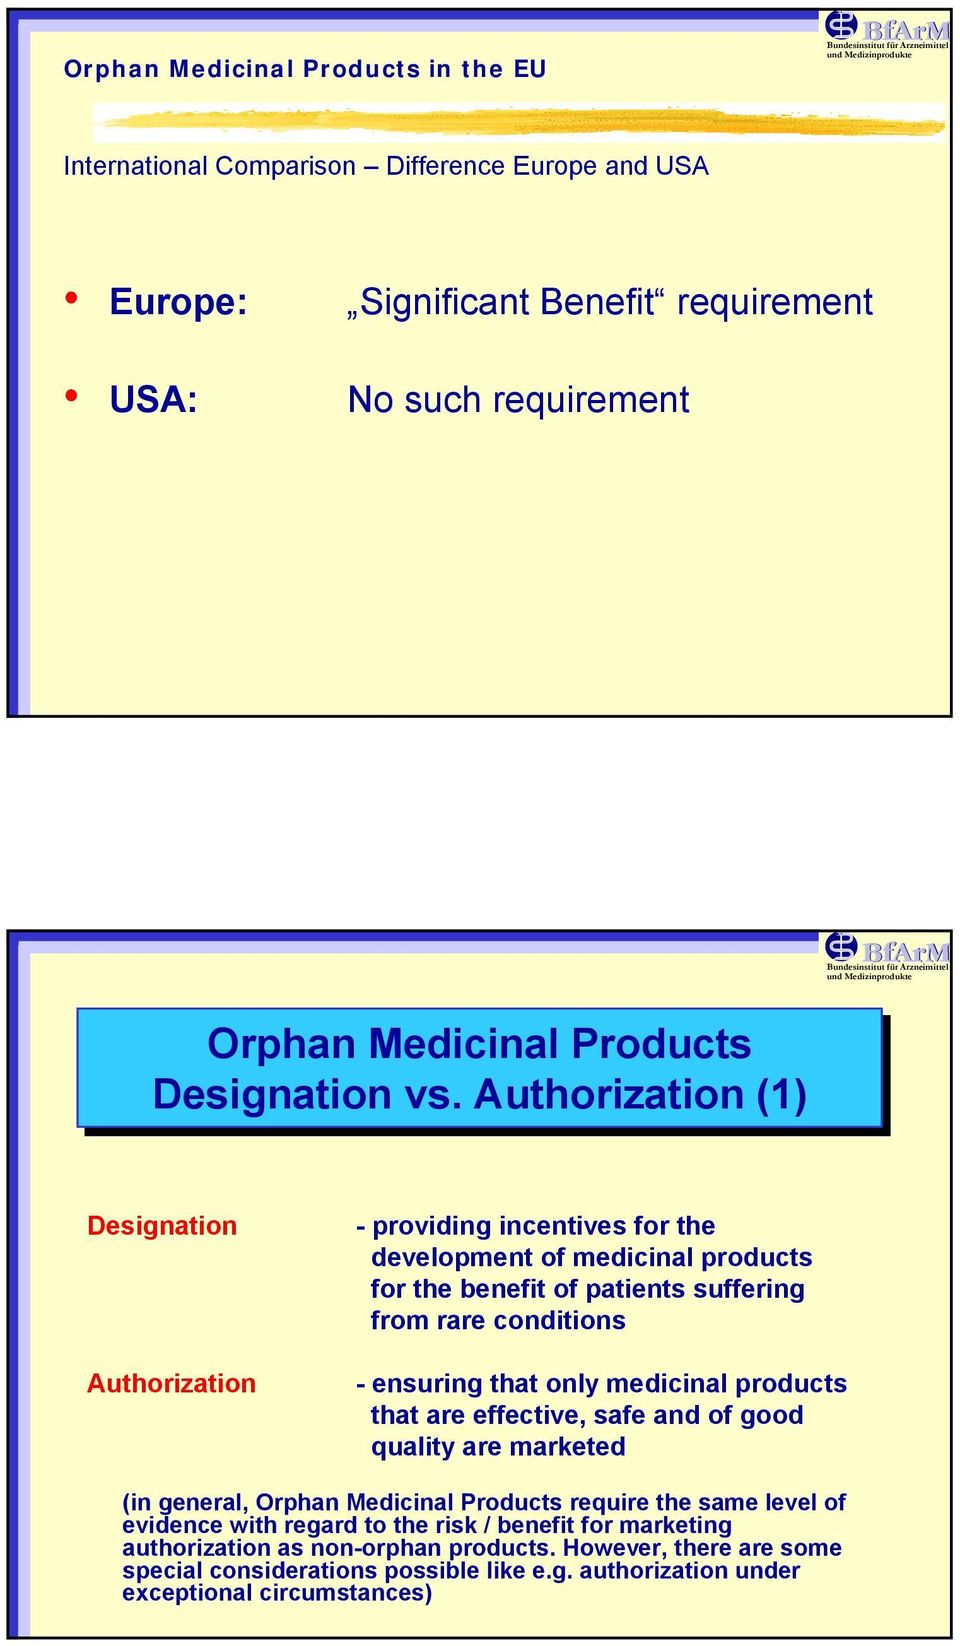 Authorization (1) Designation Authorization - providing incentives for the development of medicinal products for the benefit of patients suffering from rare conditions - ensuring that